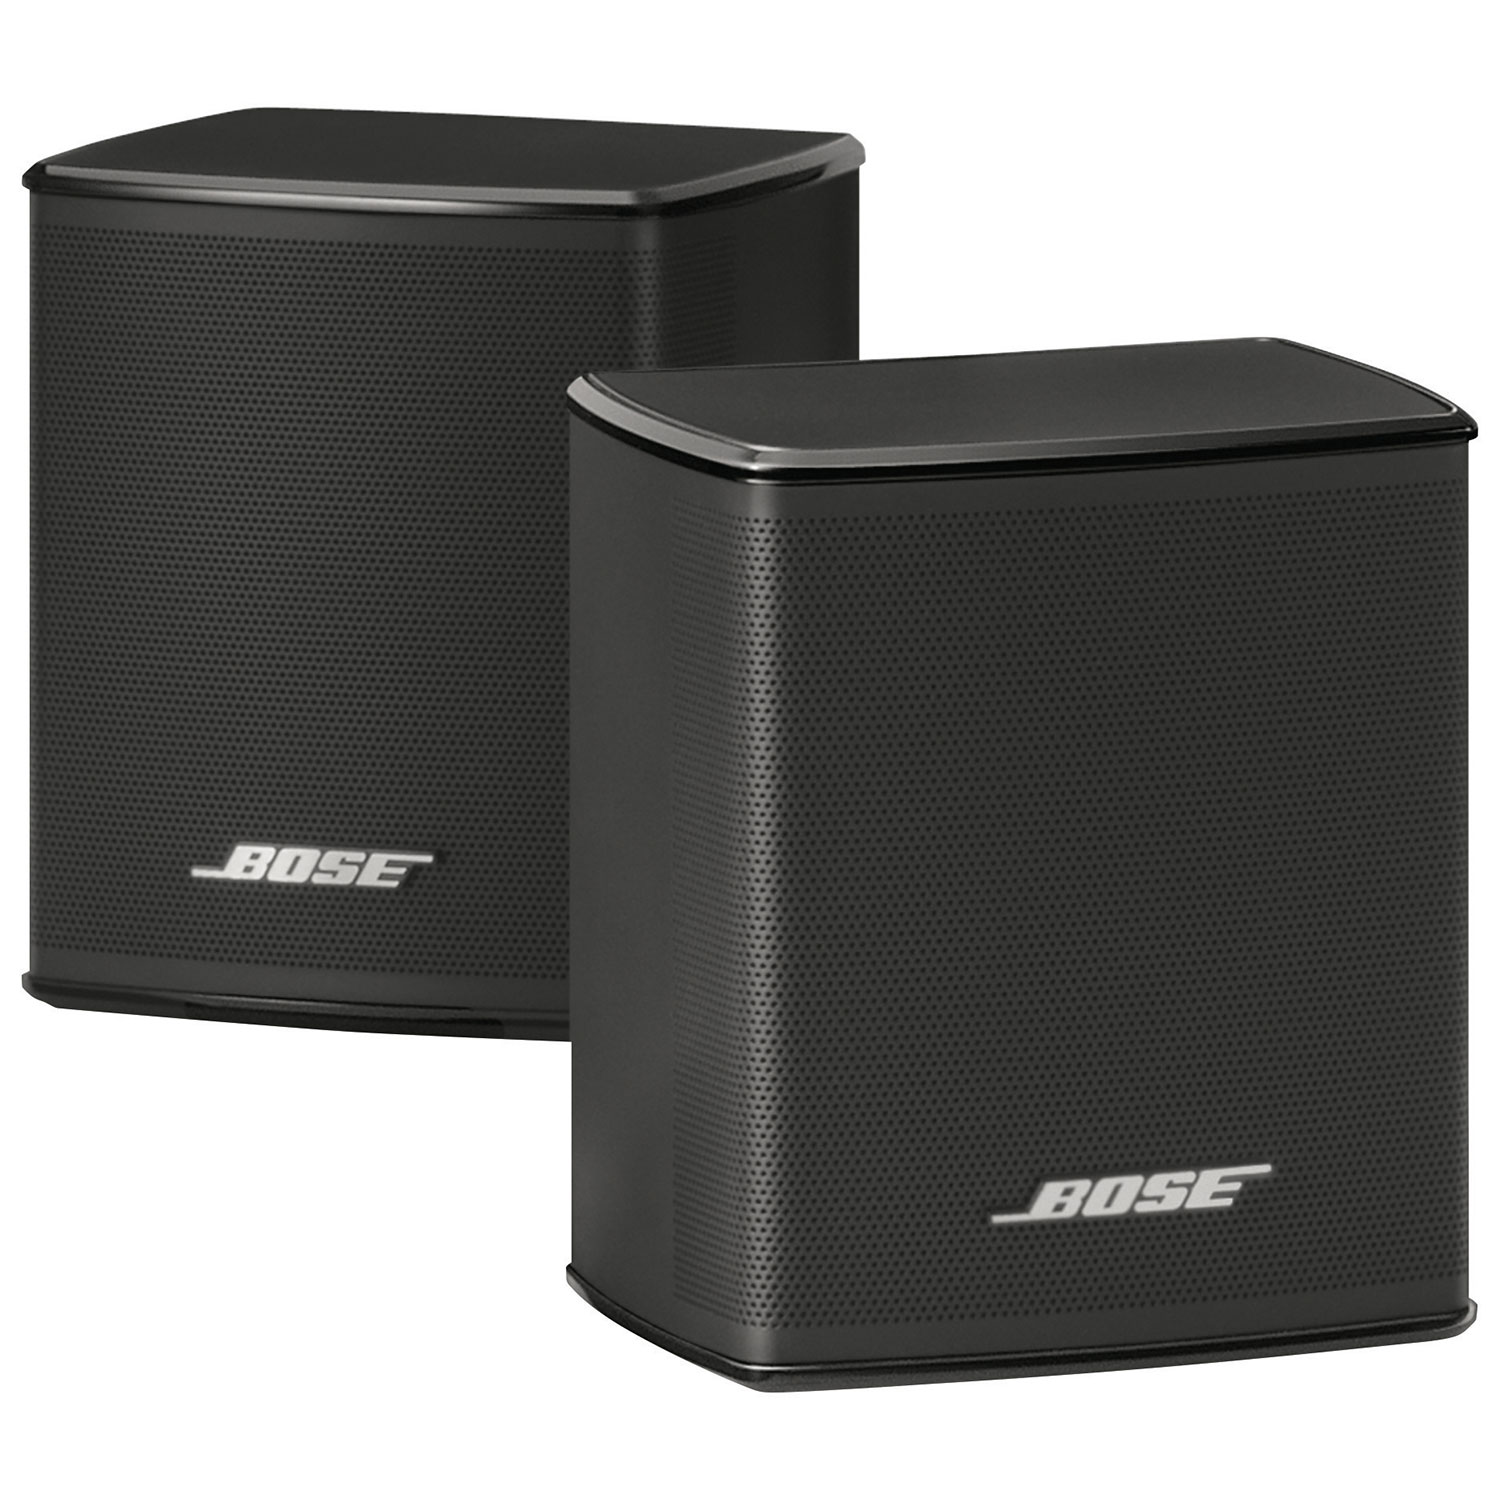 bose sound bar. bose virtually invisible 300 wireless surround speaker - pair black : home speakers best buy canada sound bar